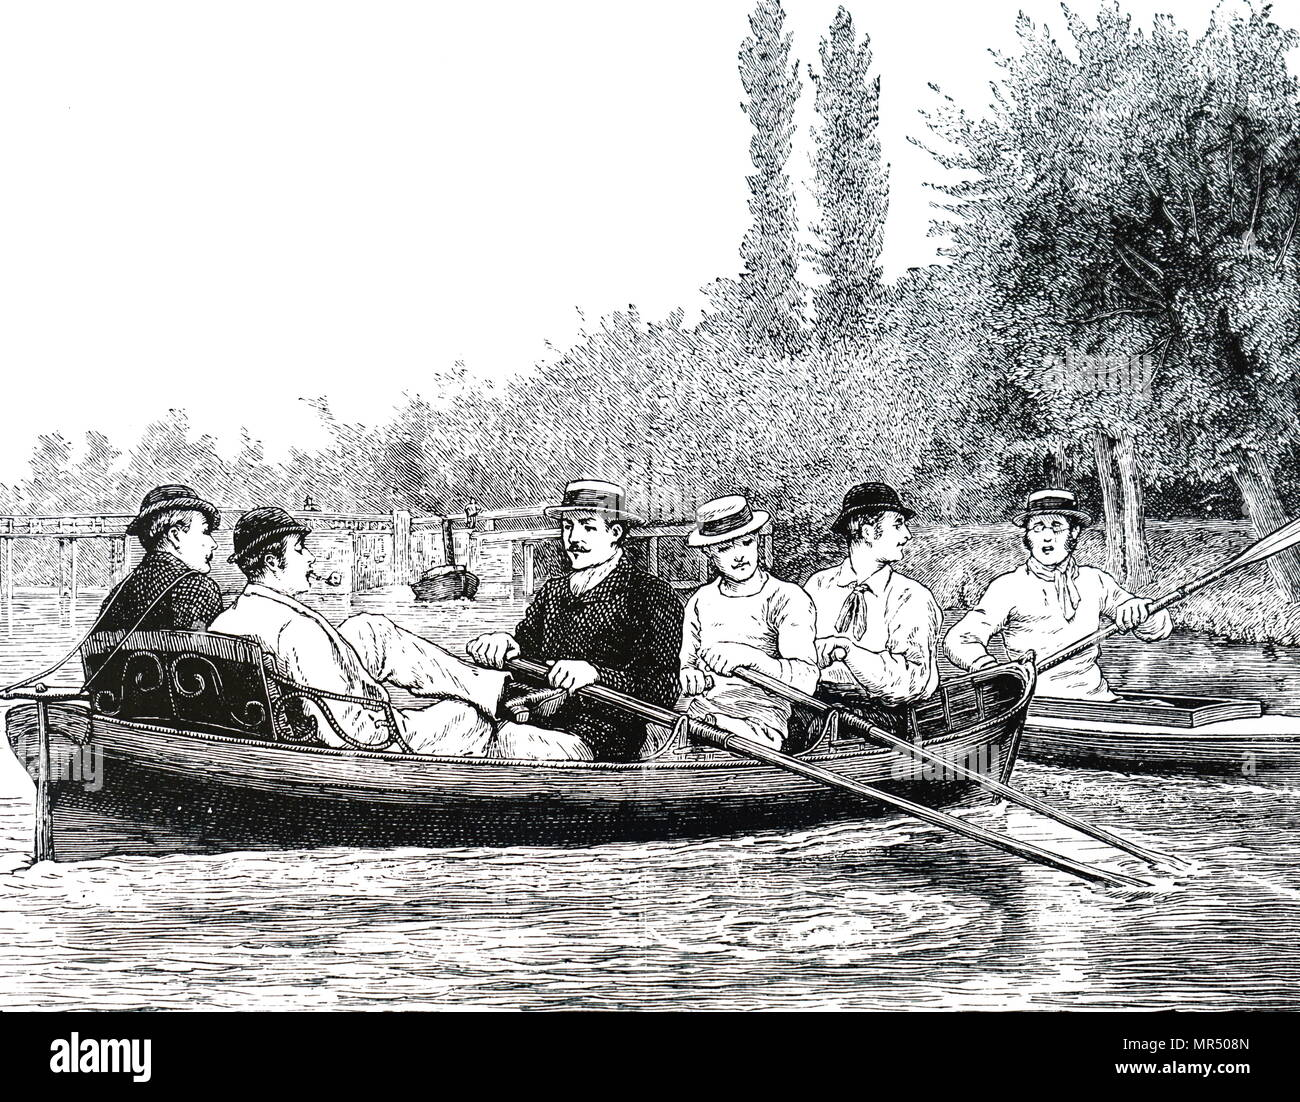 Illustration depicting Oxford University students rowing on the Iffley River. Dated 19th century - Stock Image